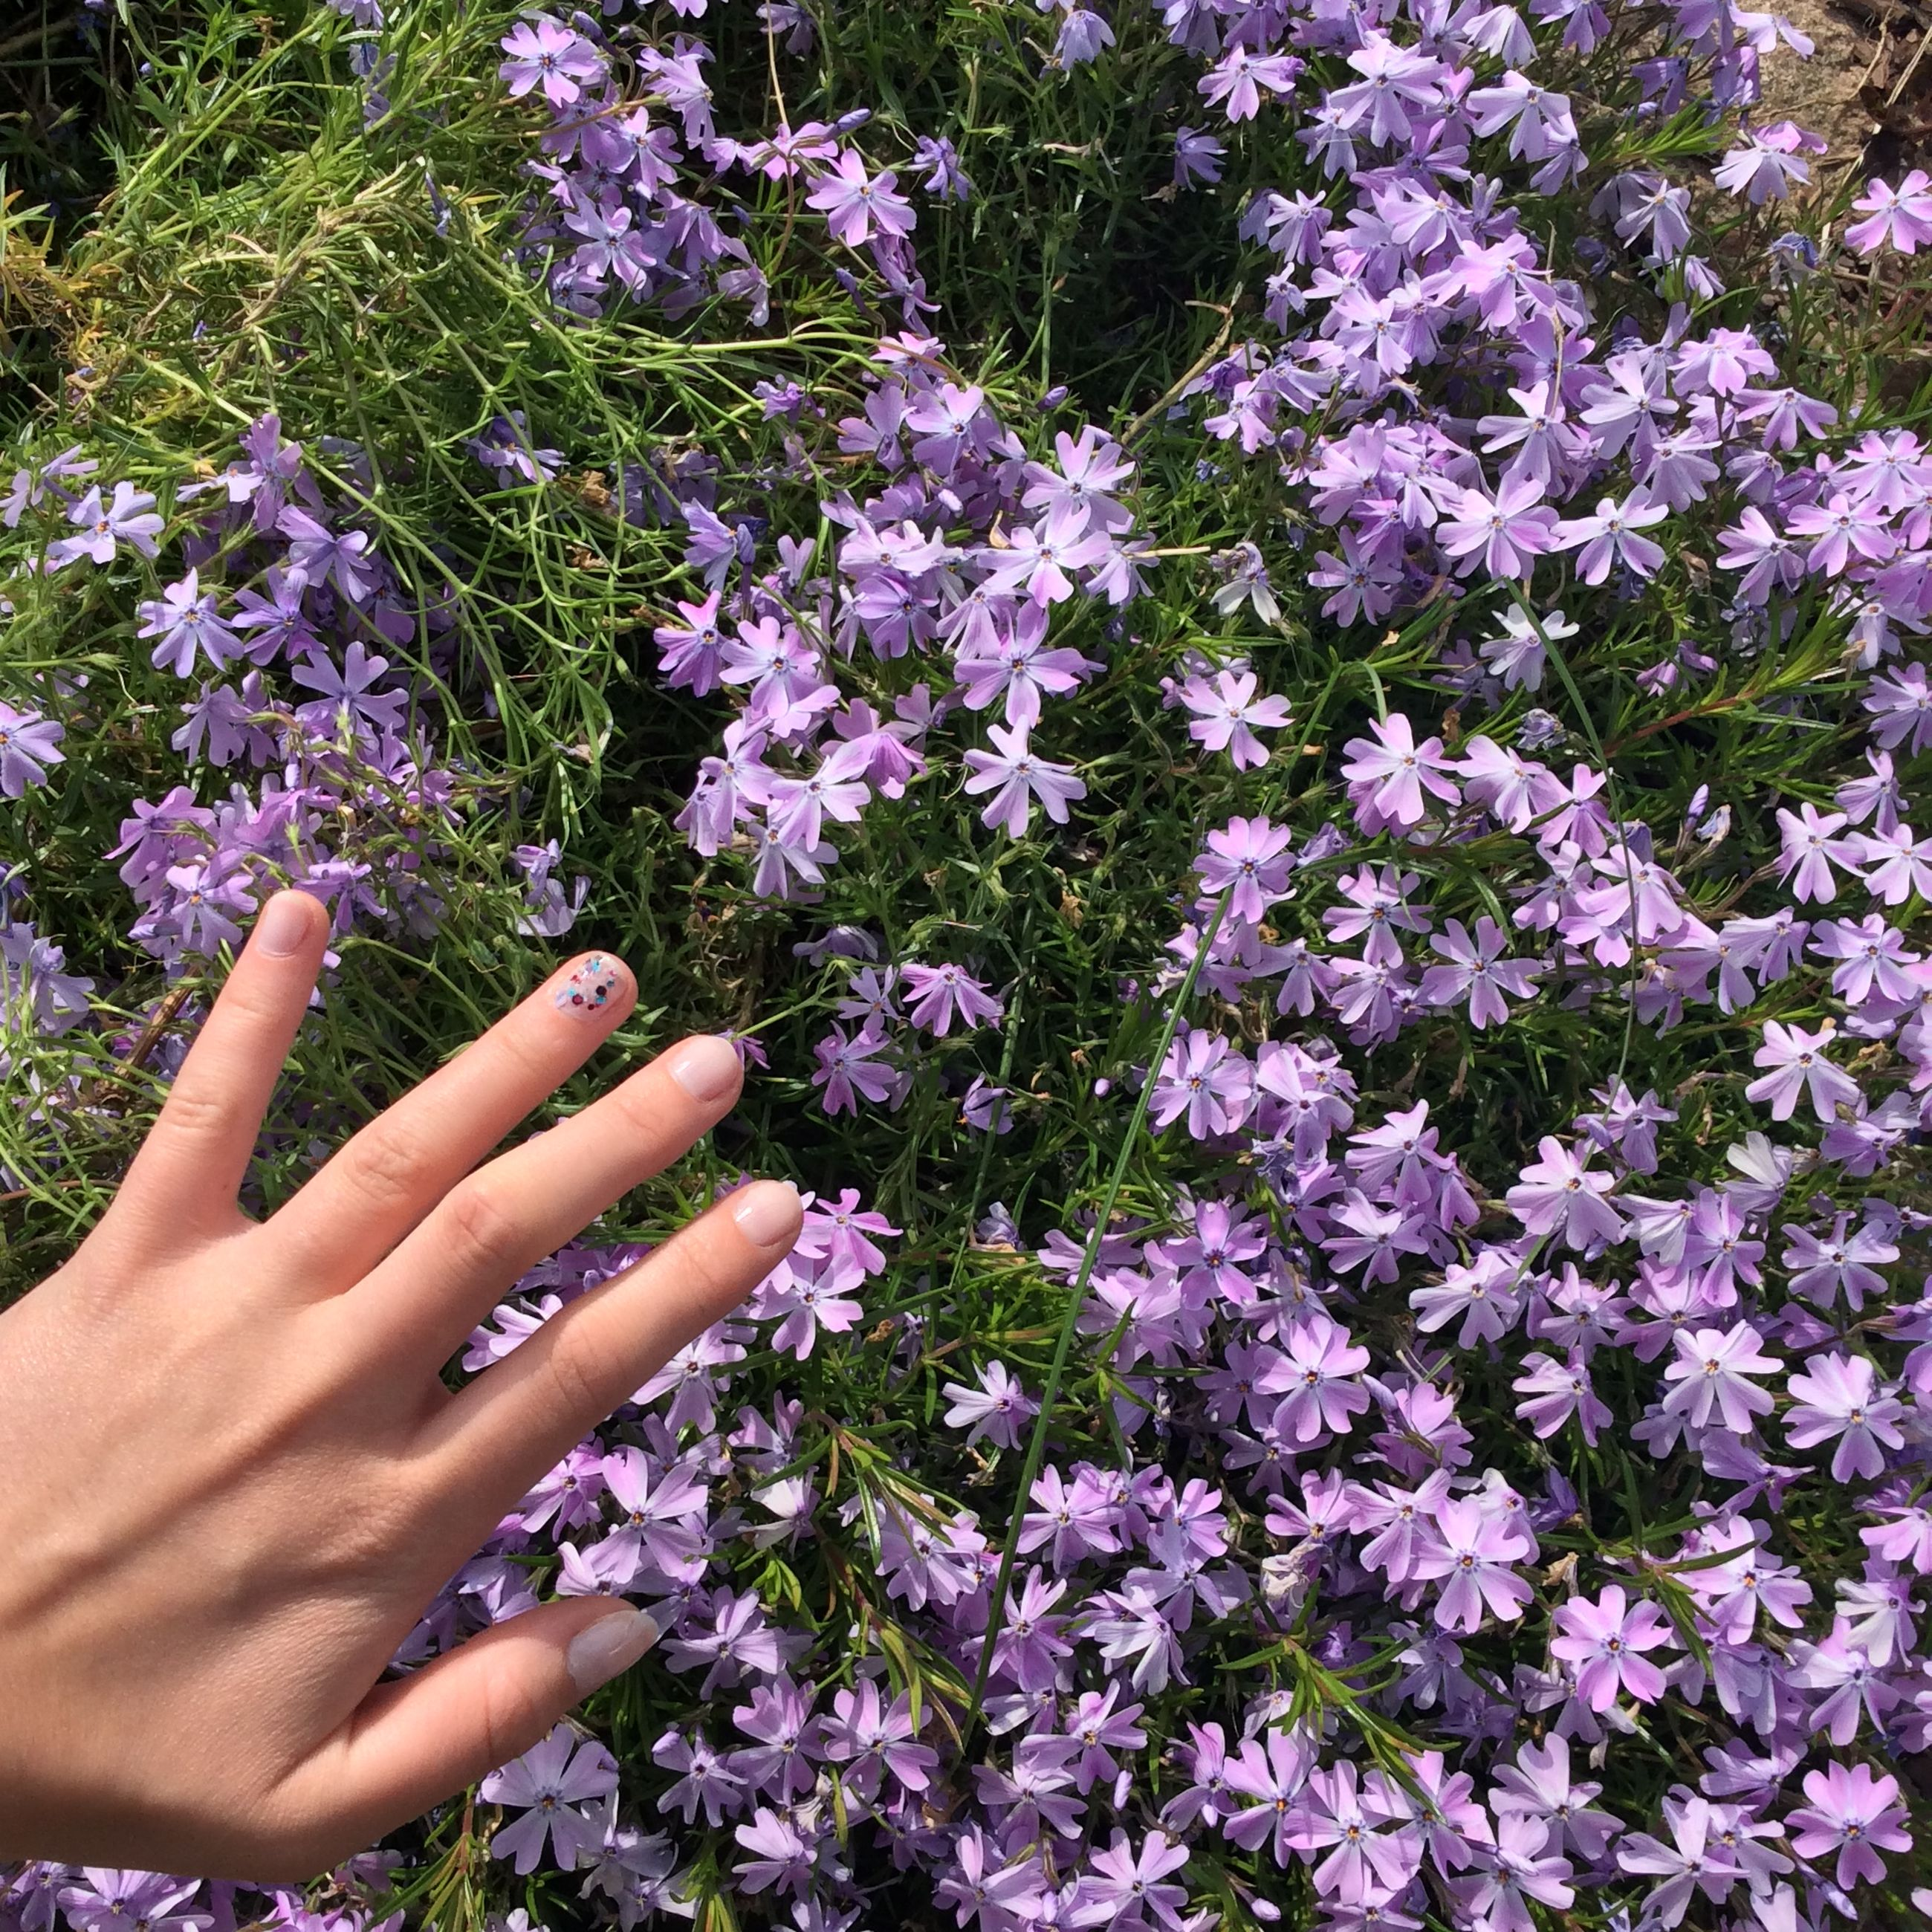 flower, freshness, growth, purple, fragility, beauty in nature, petal, nature, high angle view, plant, in bloom, flower head, blossom, blooming, abundance, botany, park - man made space, springtime, outdoors, pink color